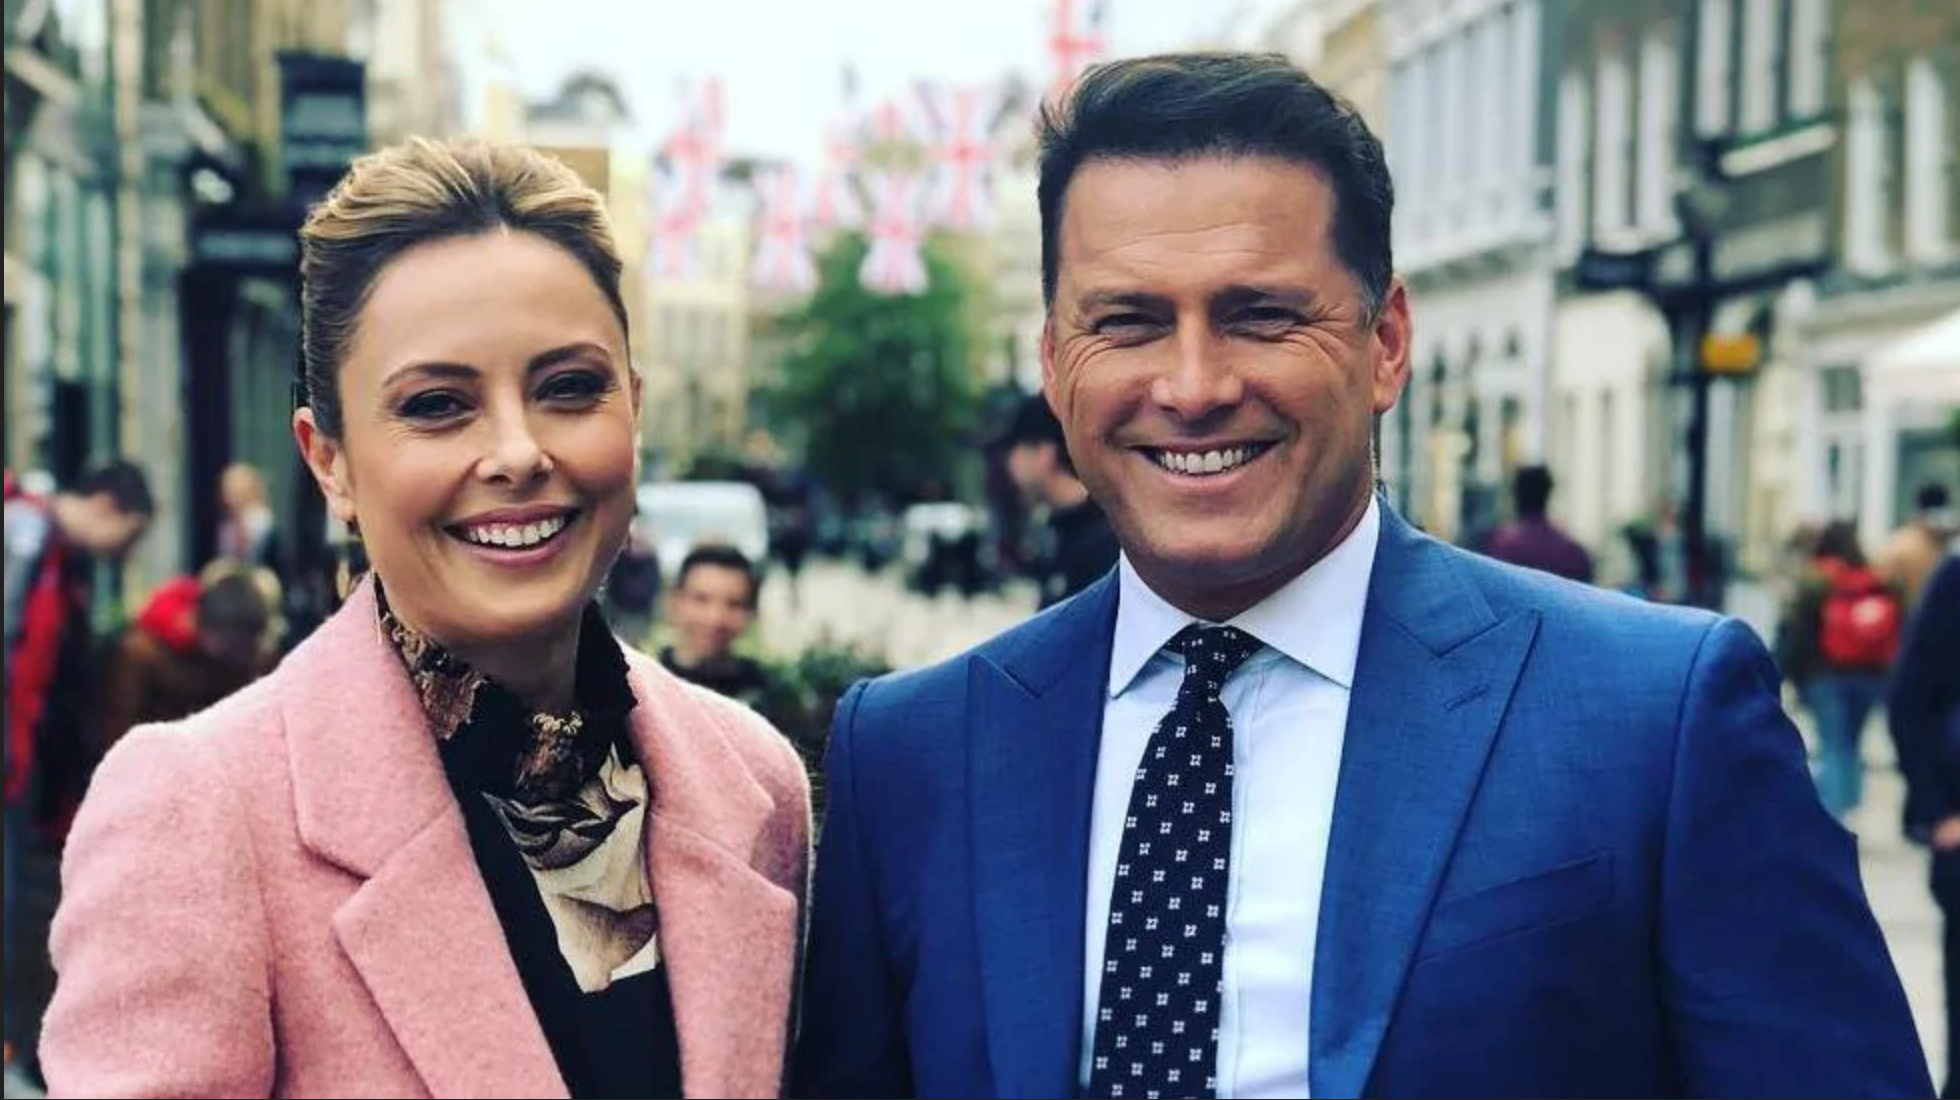 Allison Langdon  and  Karl Stefanovic  are set to host the TODAY show in 2020  PHOTO: Instagram